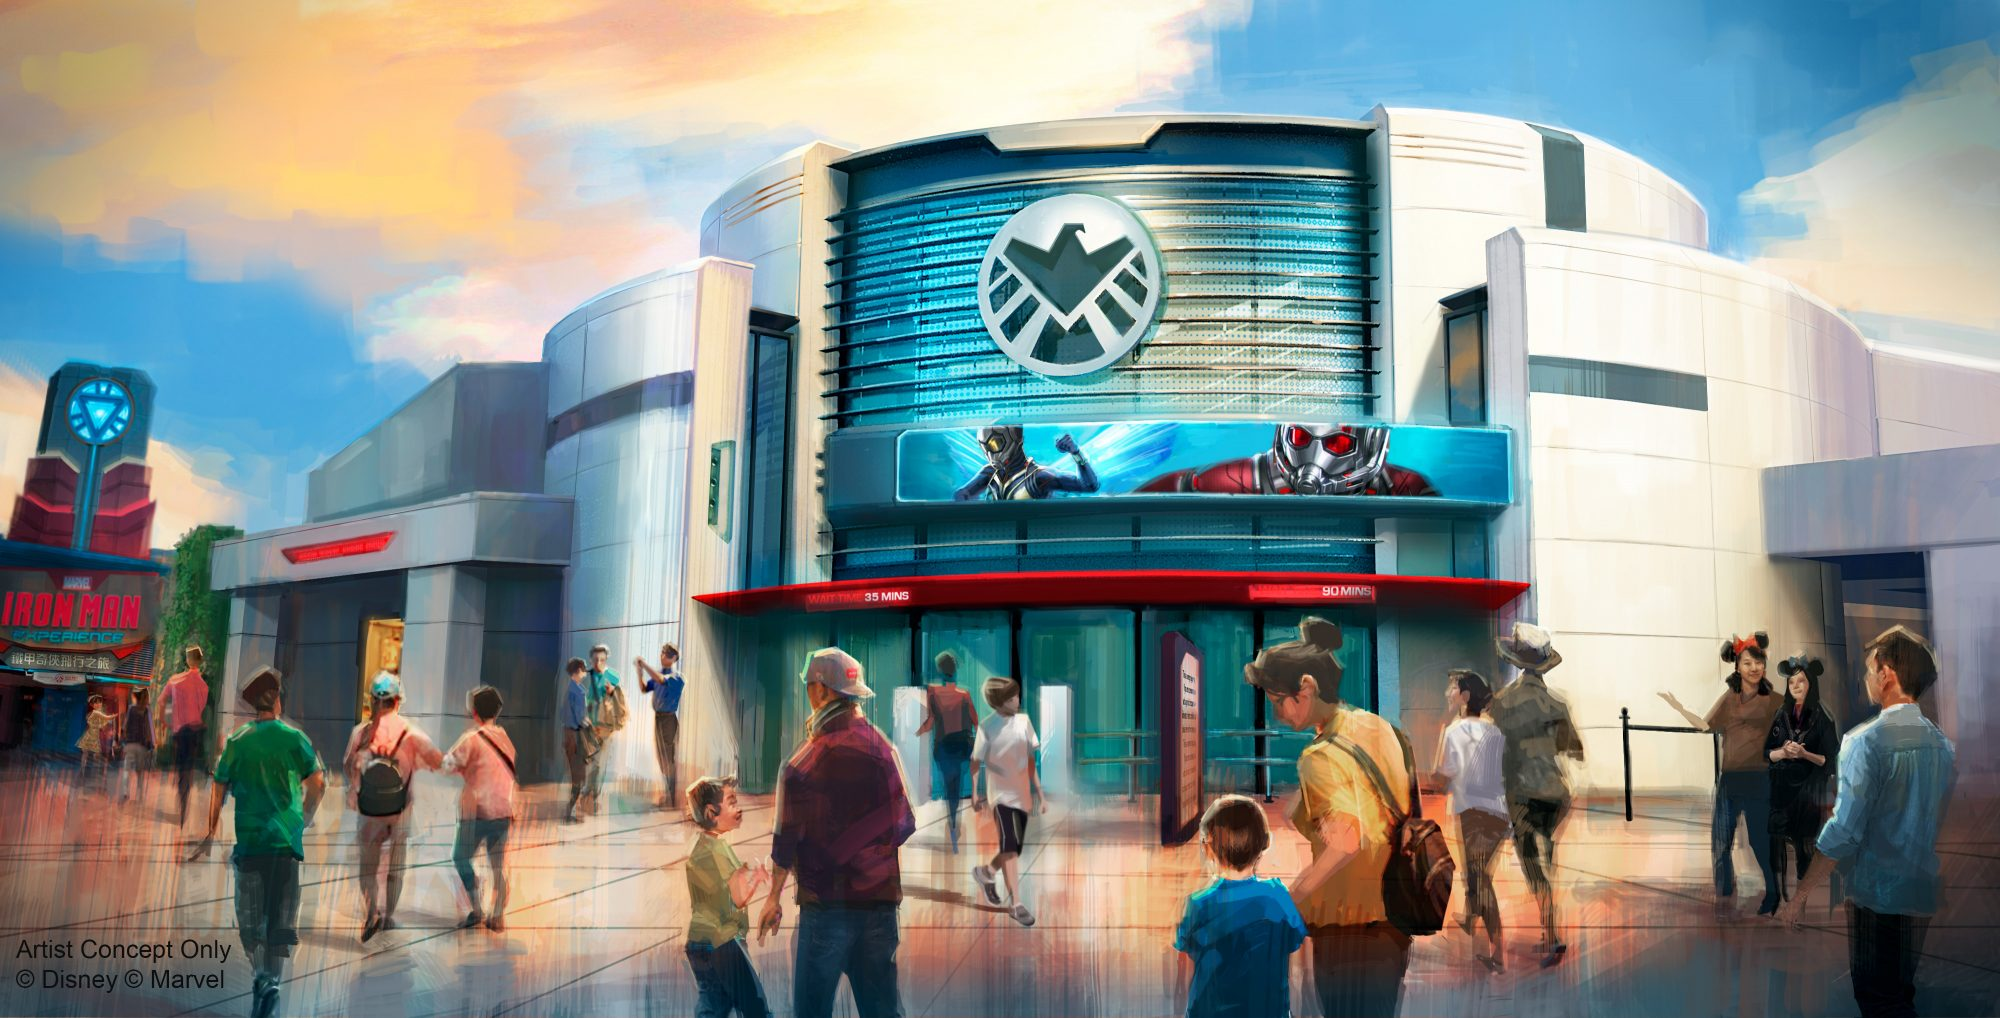 A new Marvel attraction is planned for Hong Kong Disneyland, where guests will be invited to team up with Ant-Man and The Wasp to fight Arnim Zola and his army of Hydra swarm bots in a thrilling new adventure.